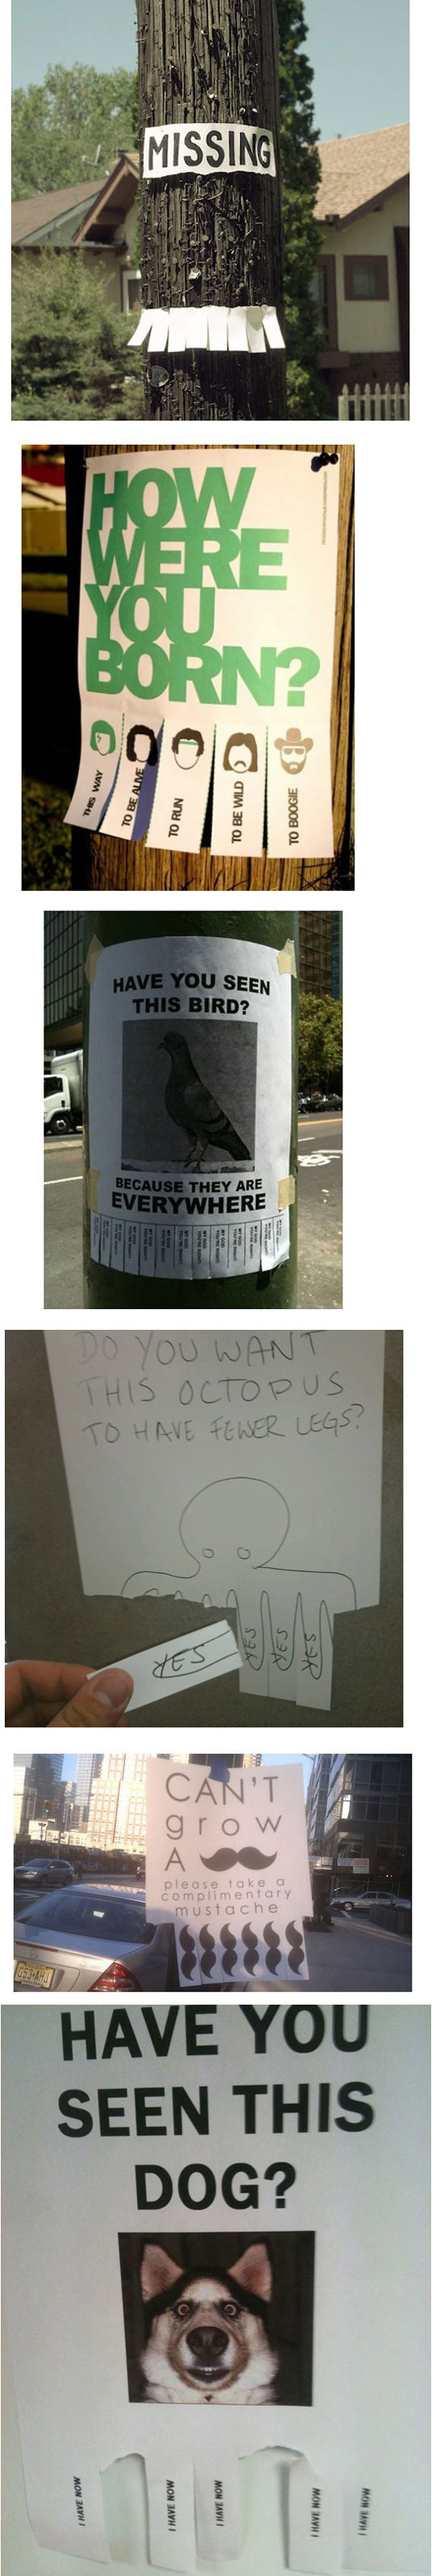 Funny paper strip signs that think outside the box.